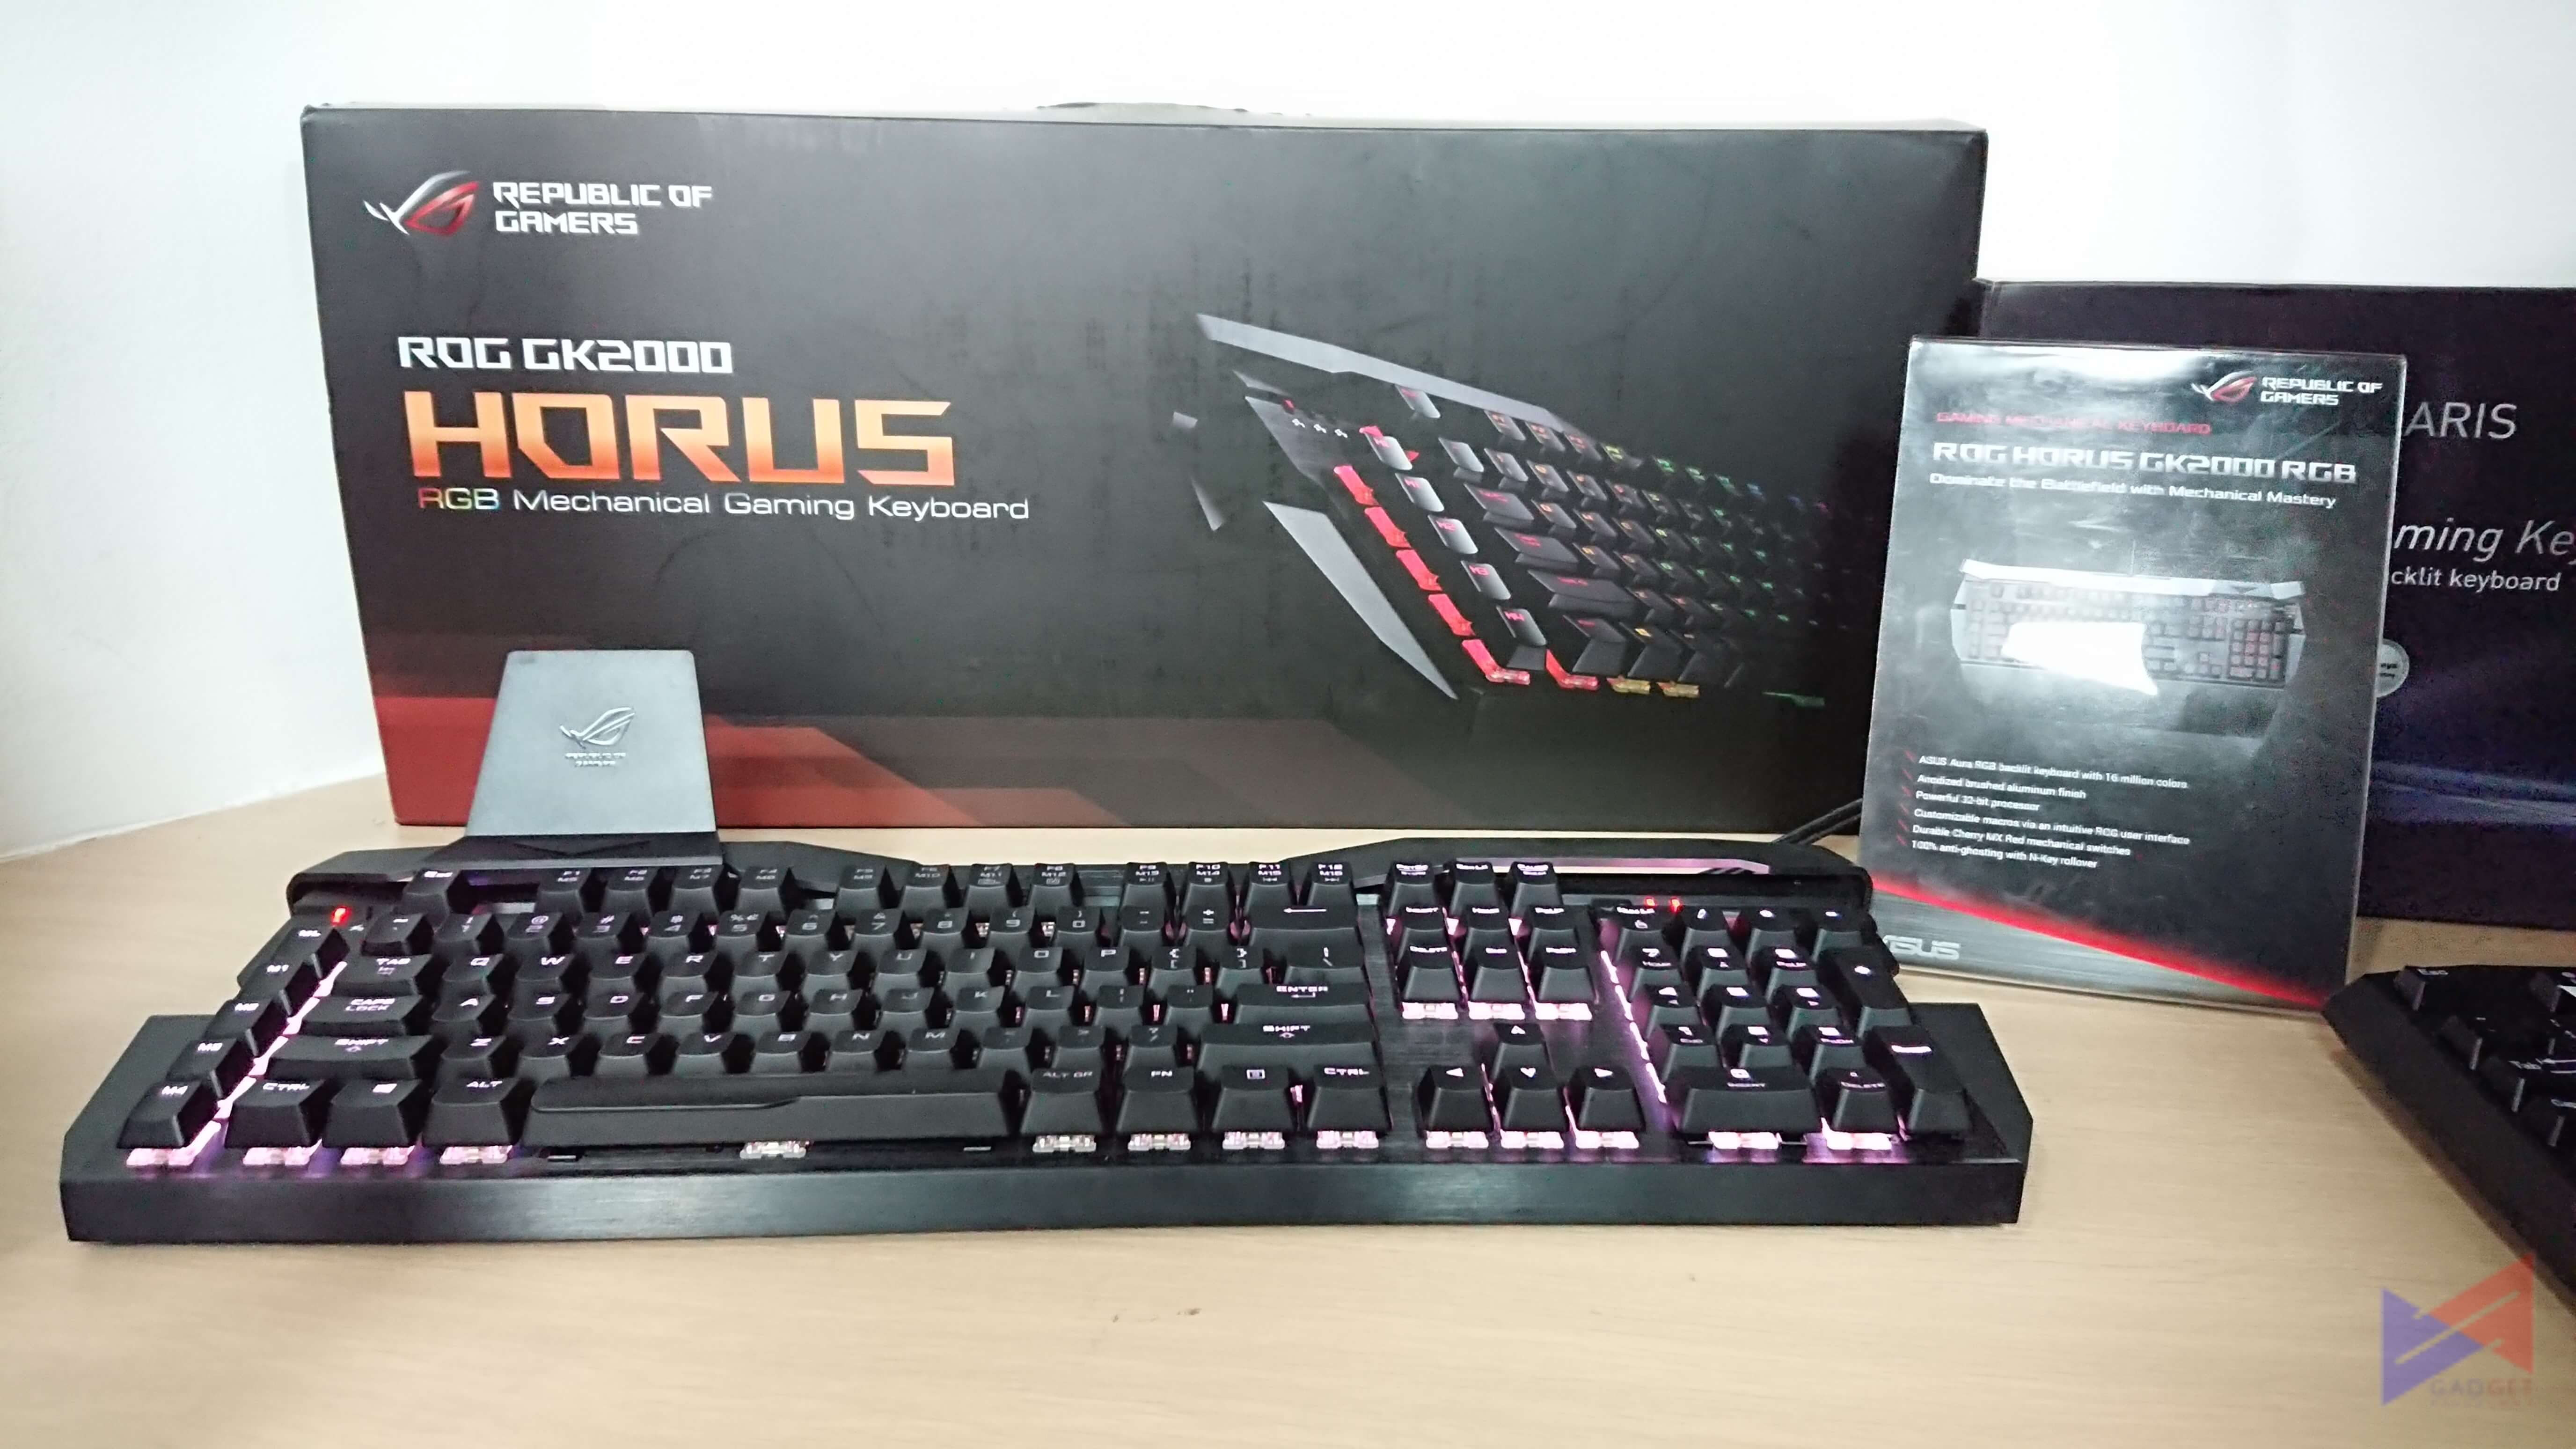 19edc680cc3 For Keyboards, there's the GK2000 ROG Horus with a striking new design, RGB  Lighting, and durable Cherry MX Red switches. The entry-level GK100 Sagaris  on ...